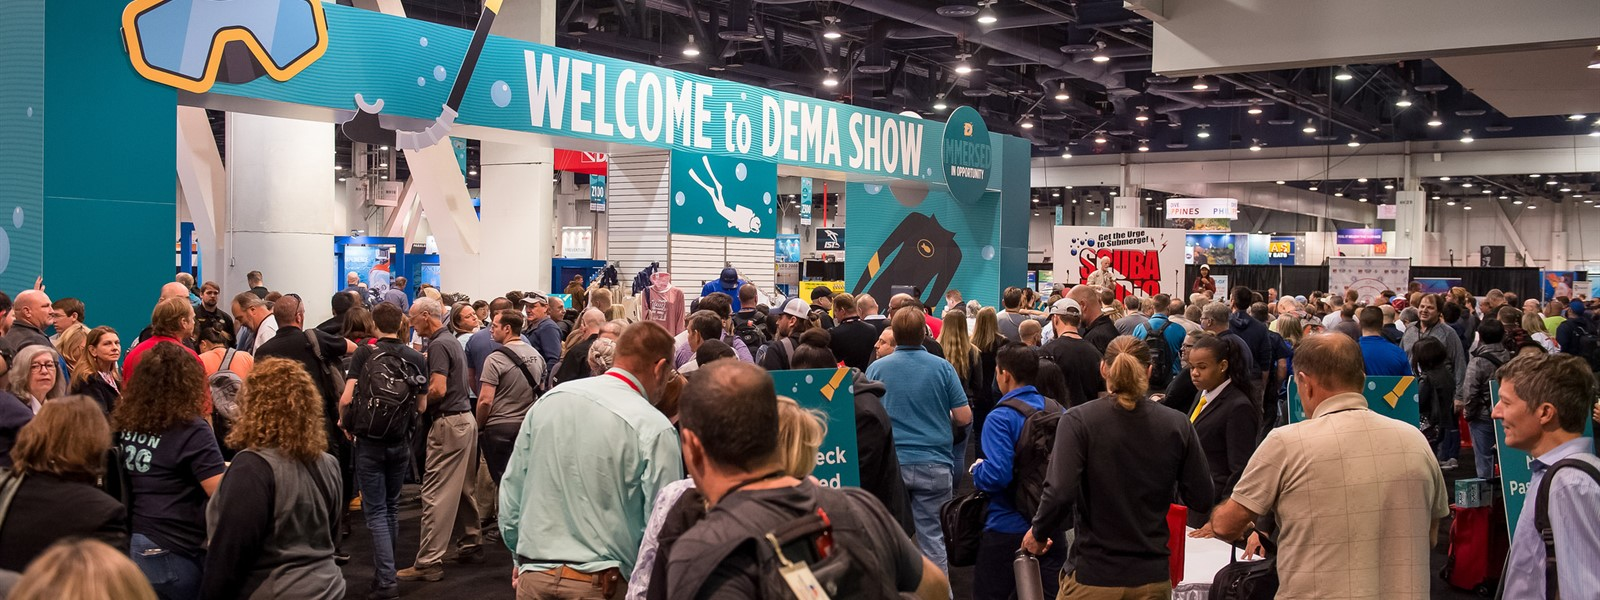 Picture of a crowd of people entering the DEMA show in Las Vegas.